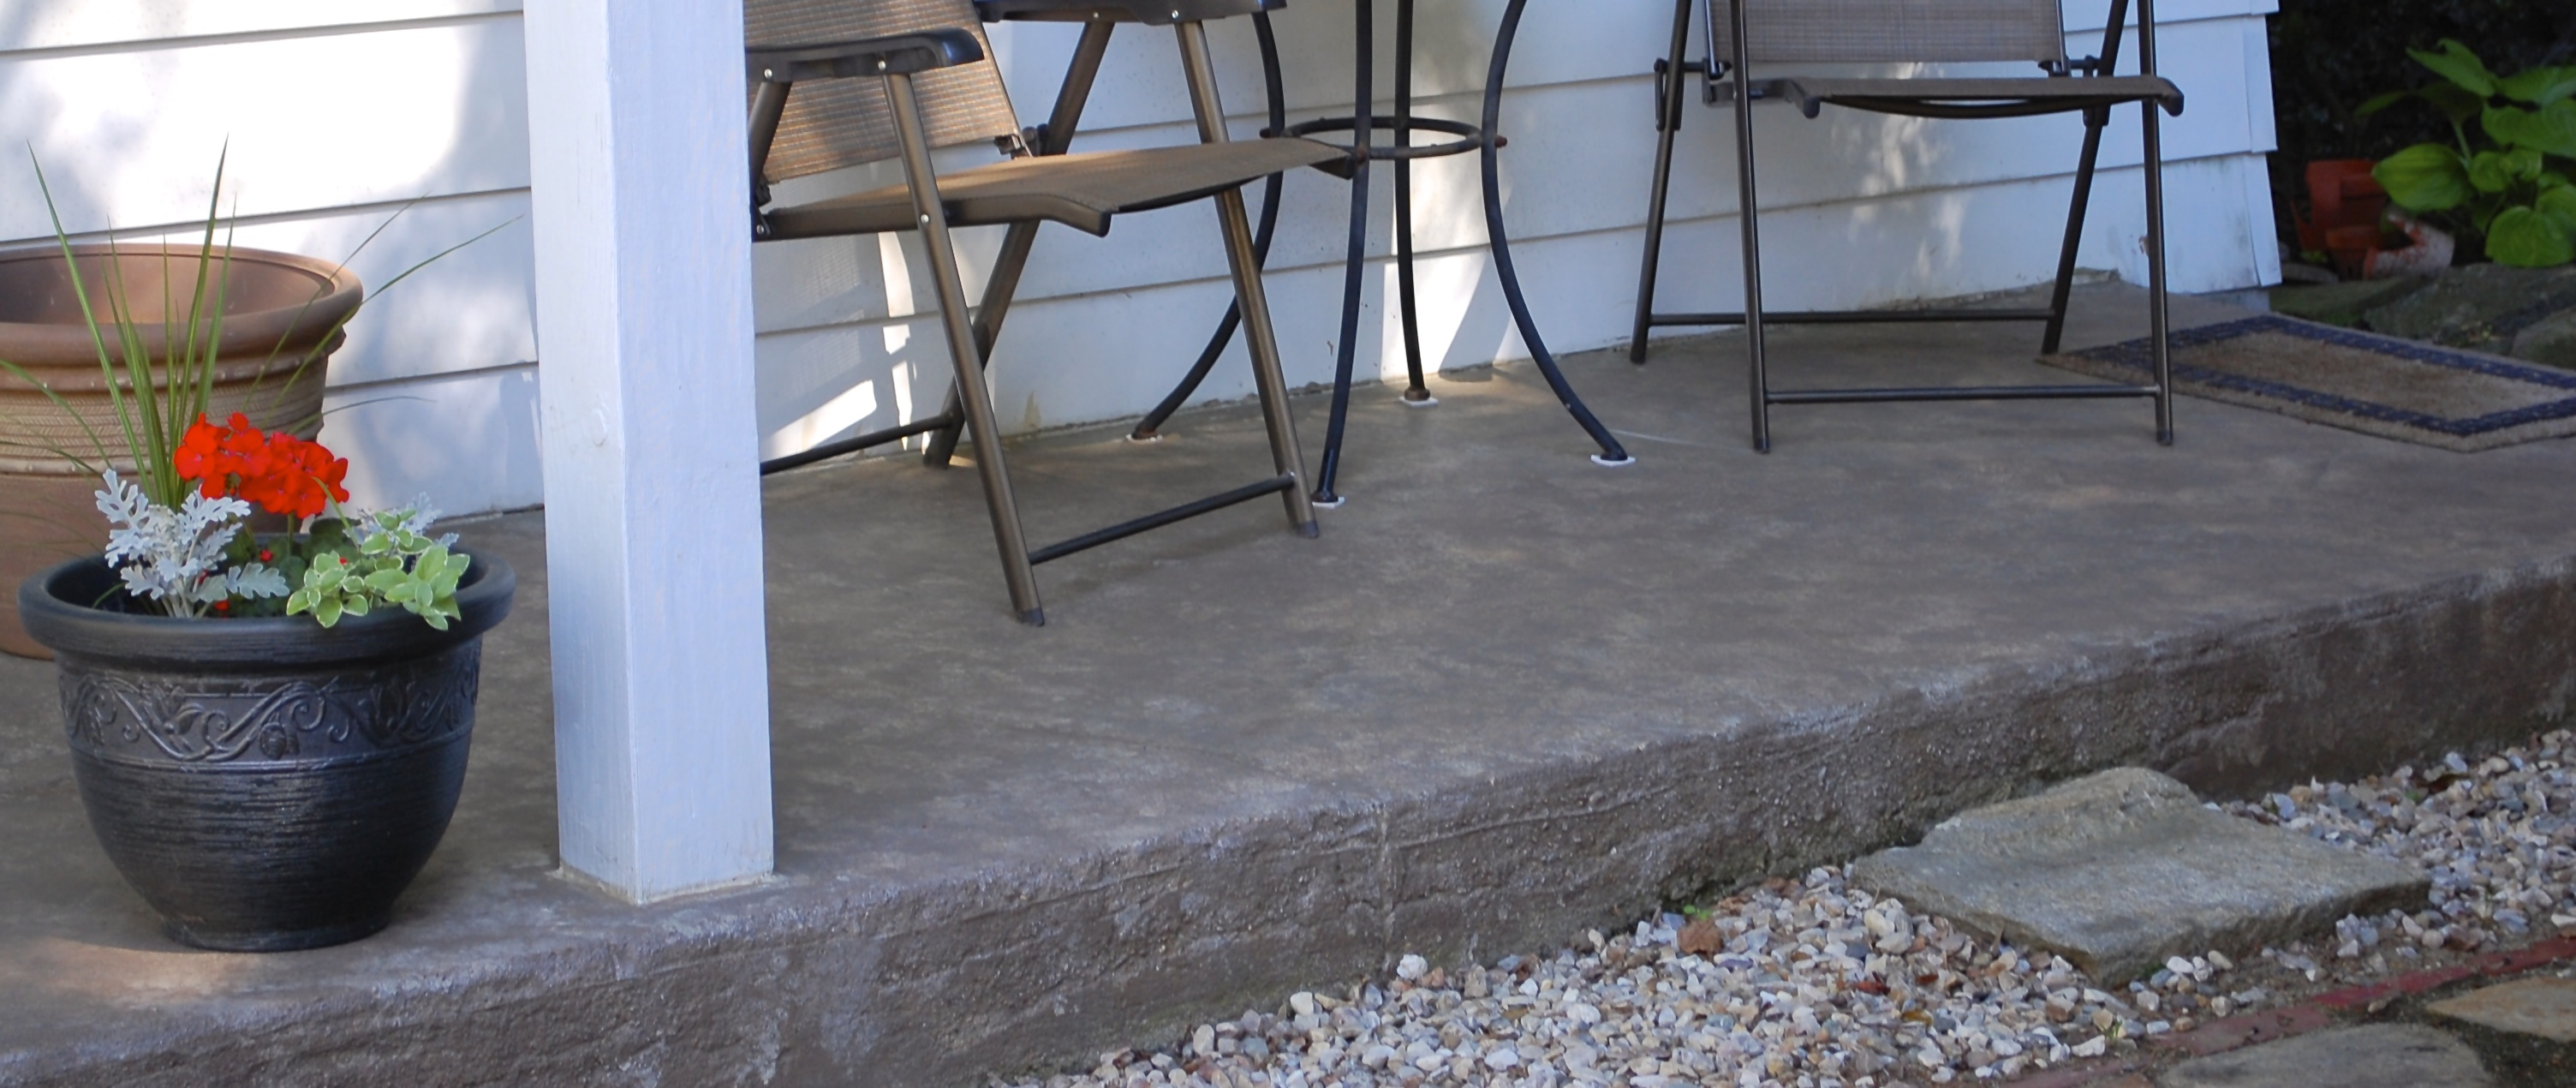 You Are Here: Home / DIY / How To Revive A Concrete Patio With Stain